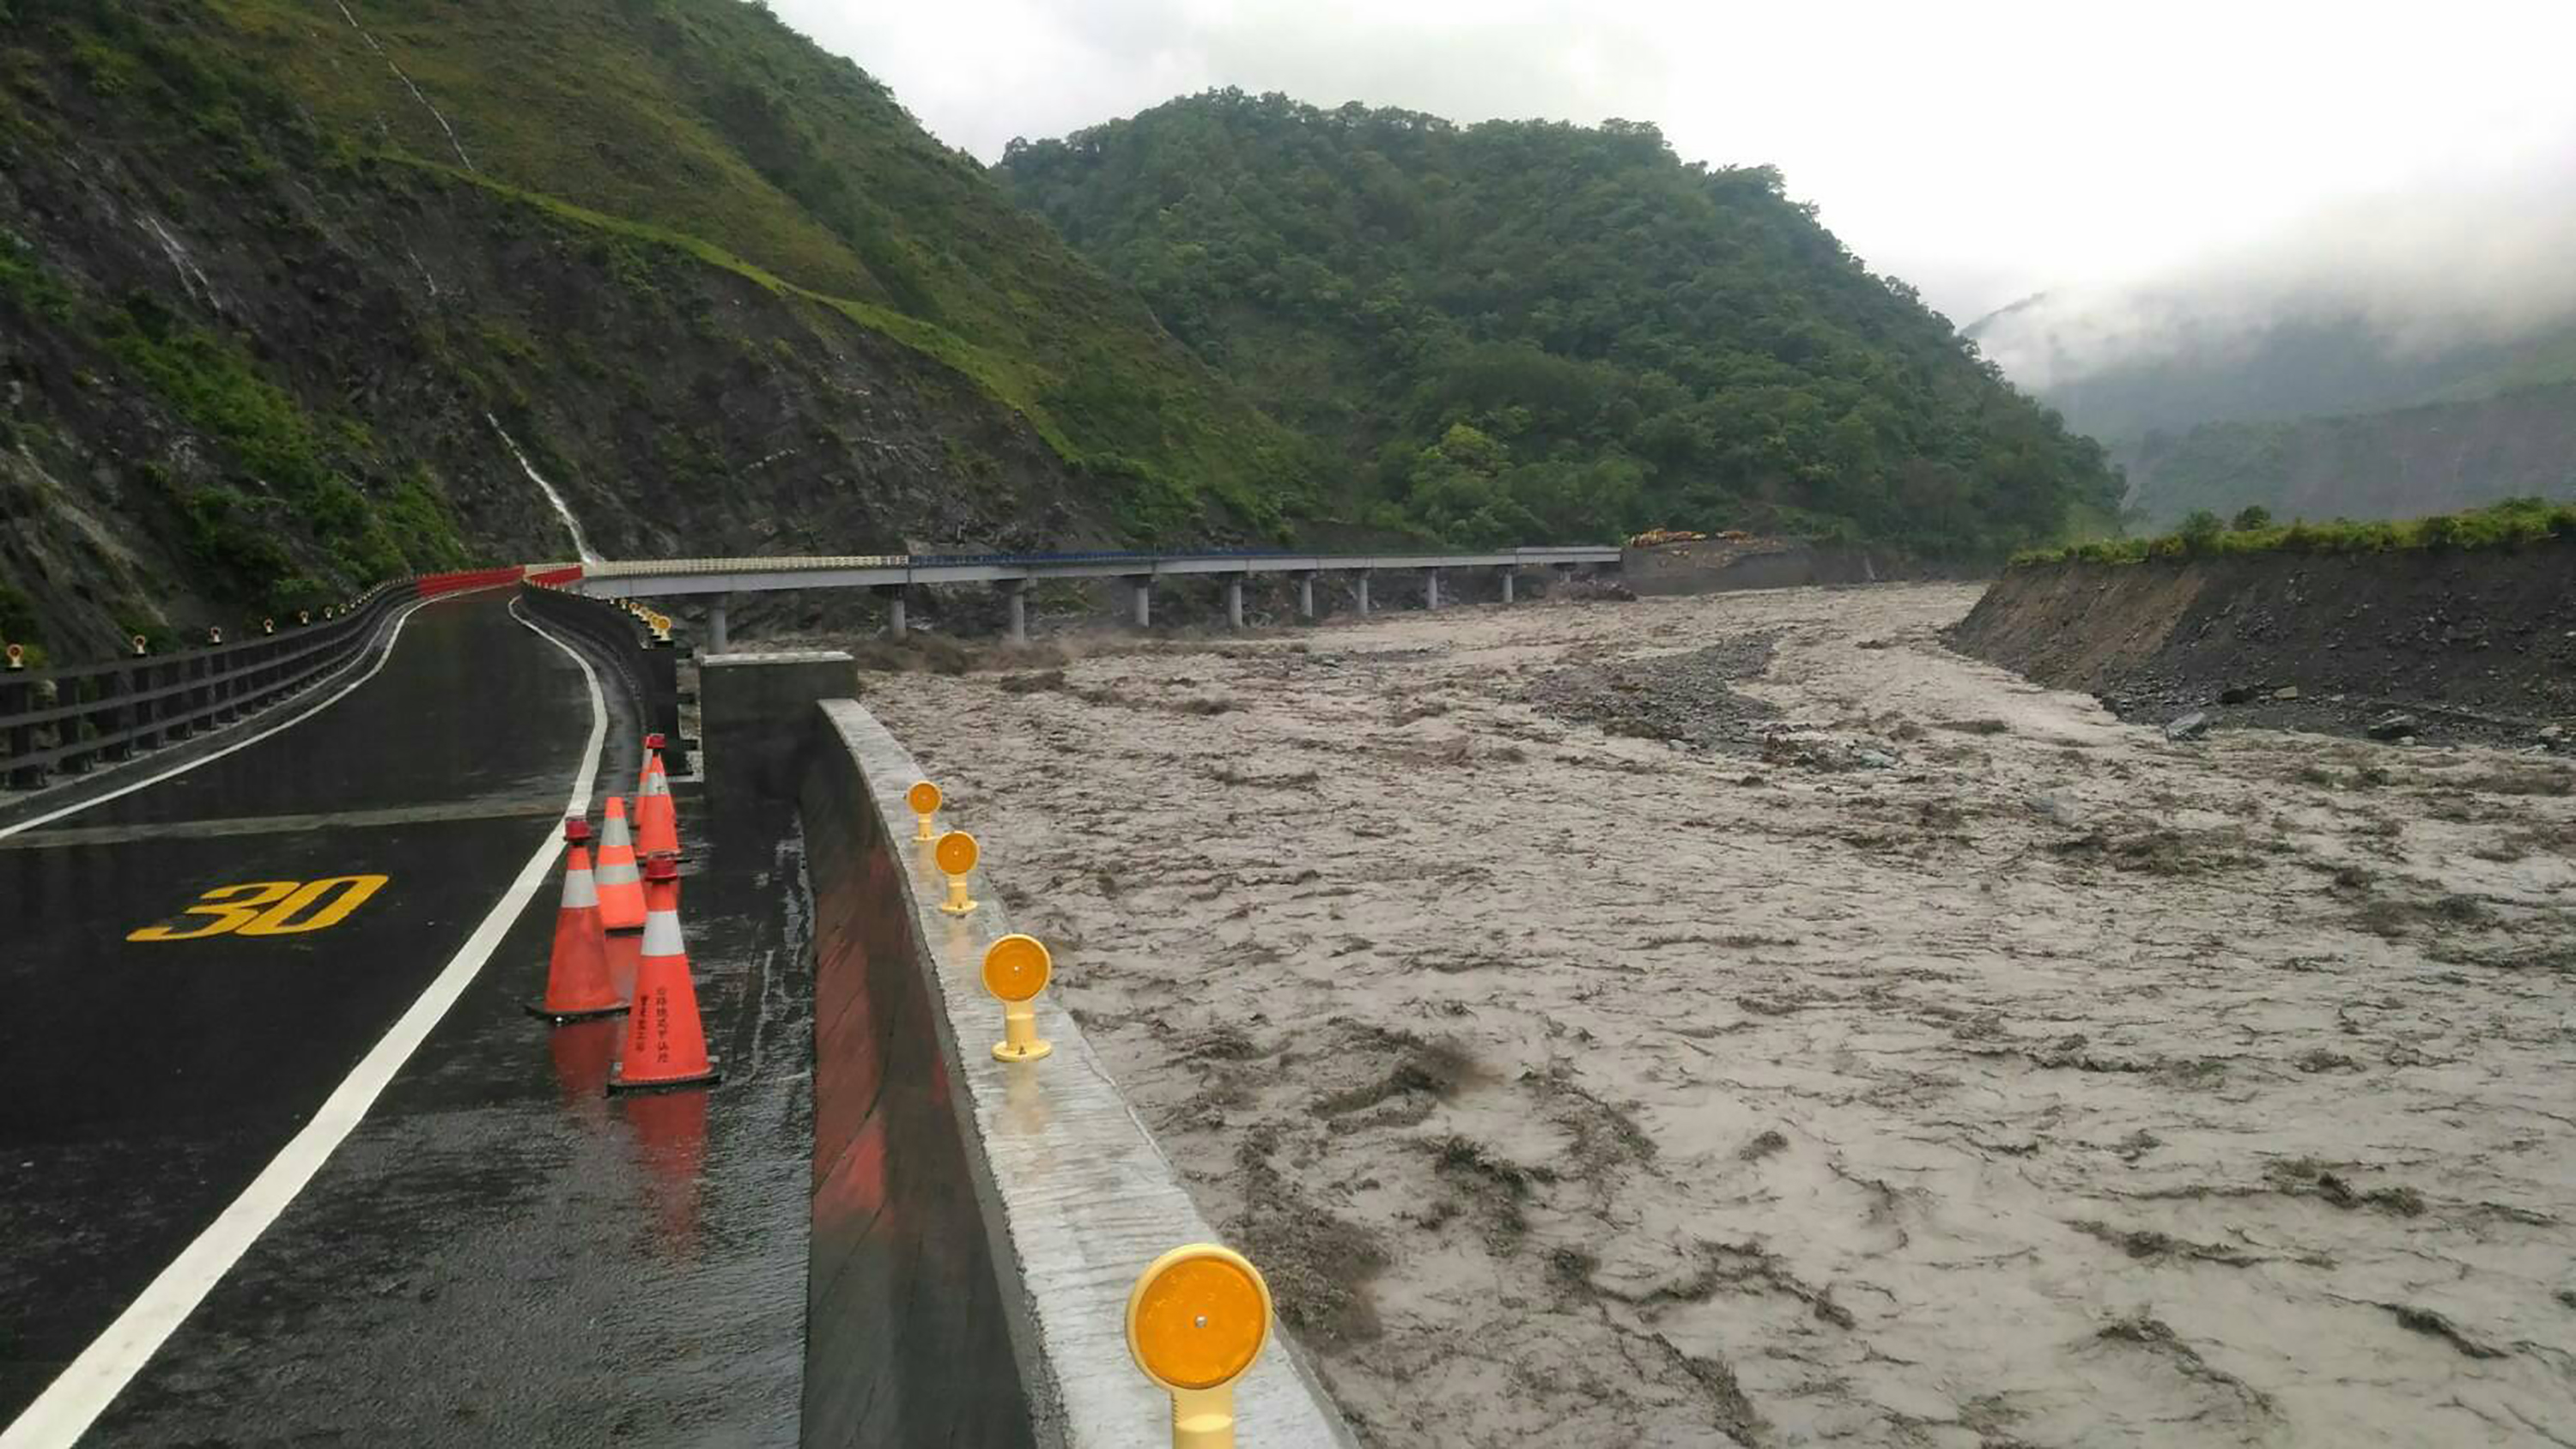 Taoyuan District in Kaohsiung City witnessed 500 millimeter of rainfall within 24 hours over the last three days.